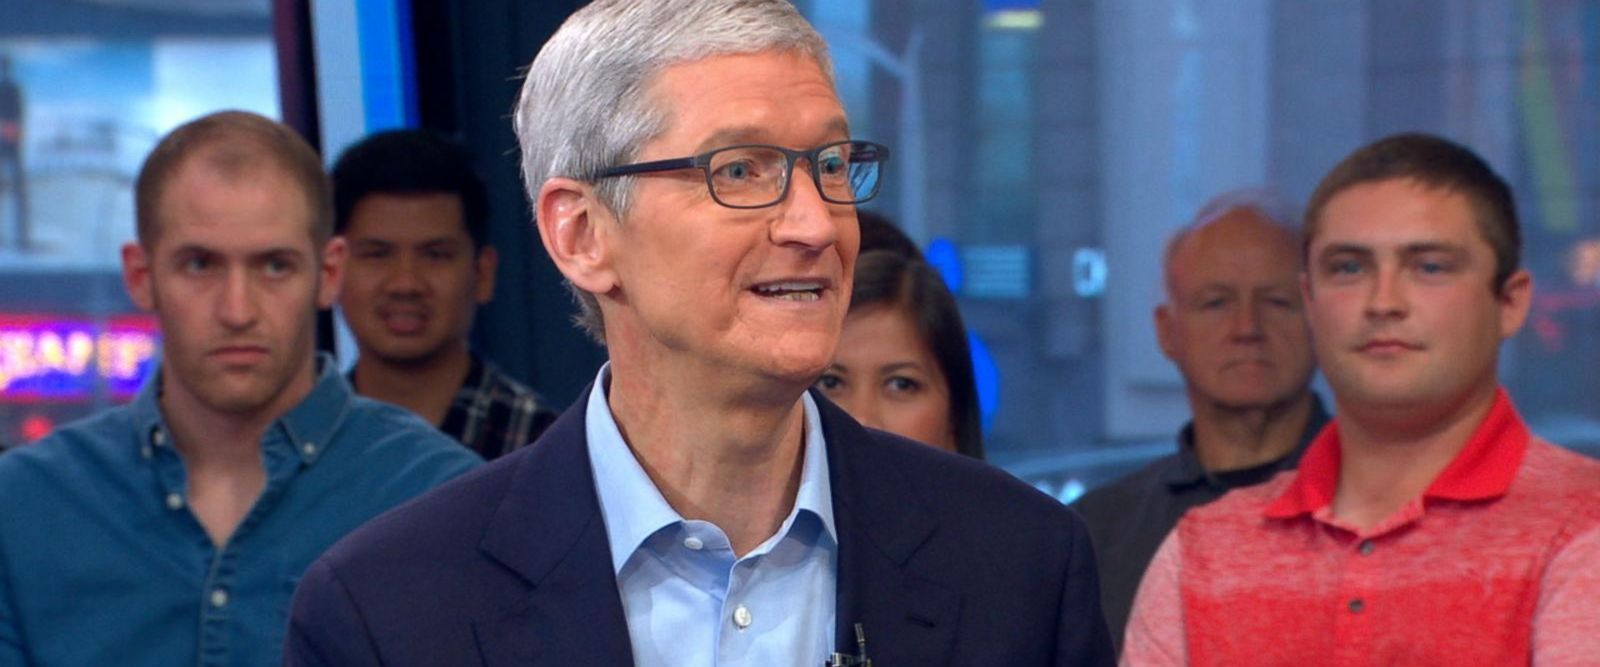 VIDEO: Apple CEO discusses revolutionary technology in new iPhones